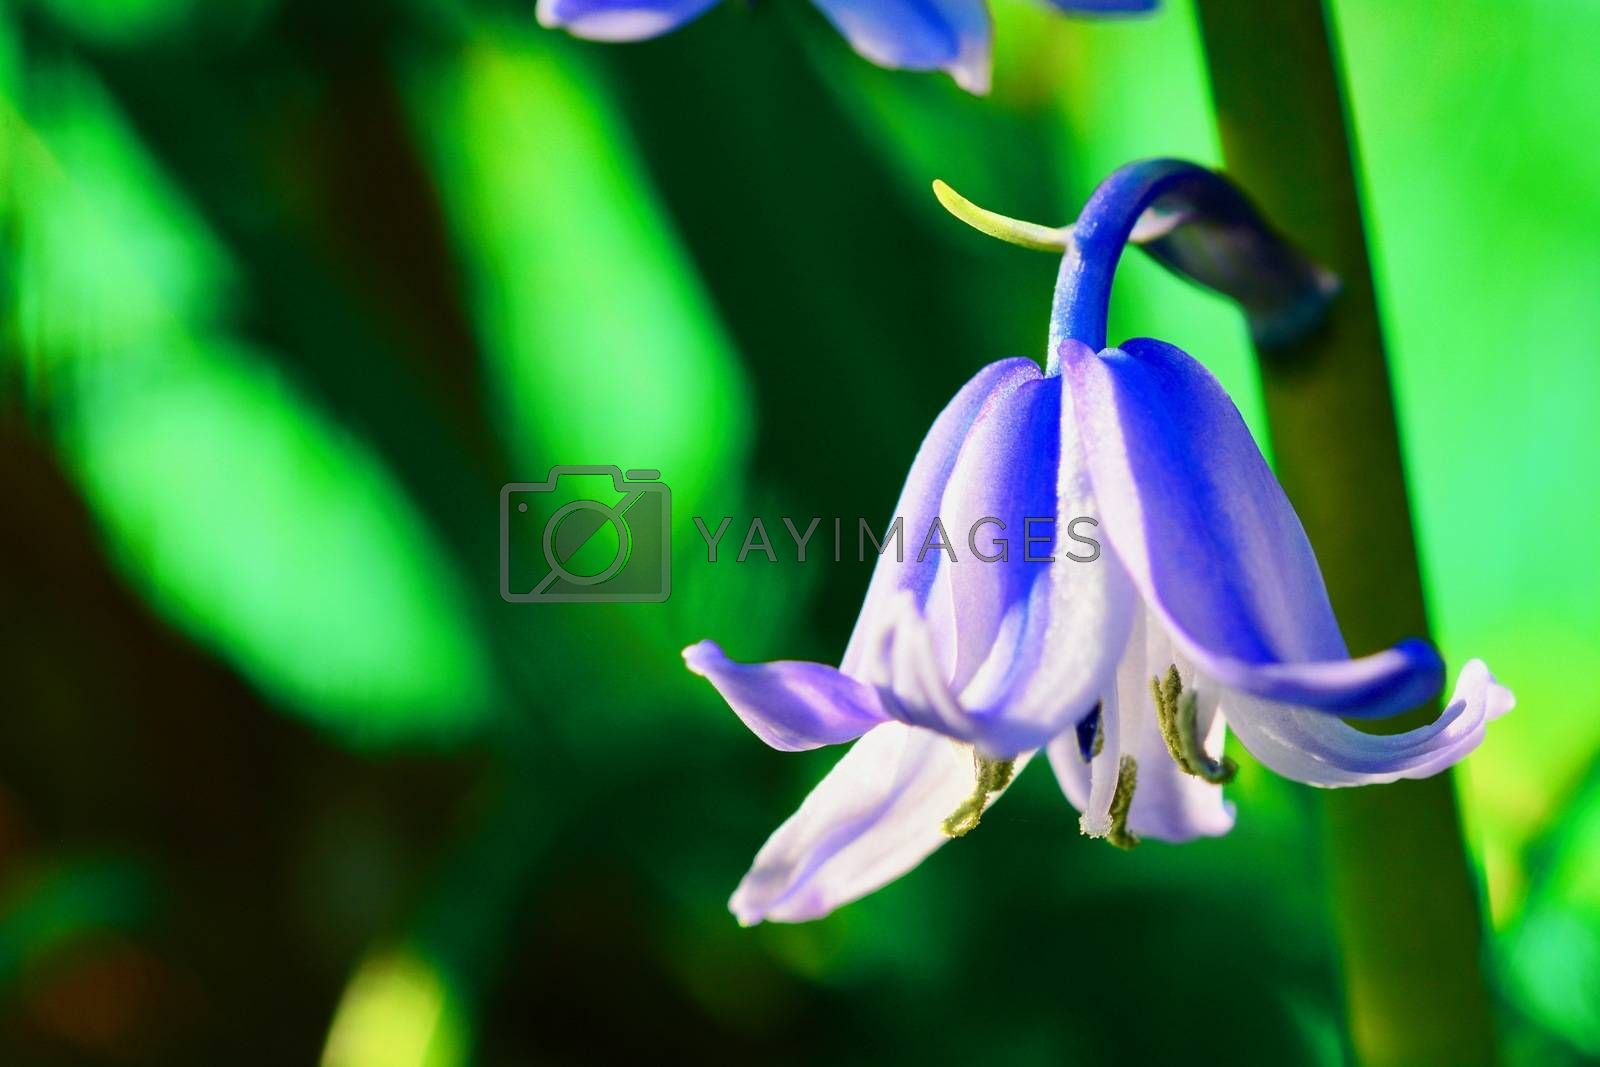 Hyacinthoides non-scripta is a bulbous perennial plant, found in Atlantic areas from north-western Spain to the British Isles, and also frequently used as a garden plant.